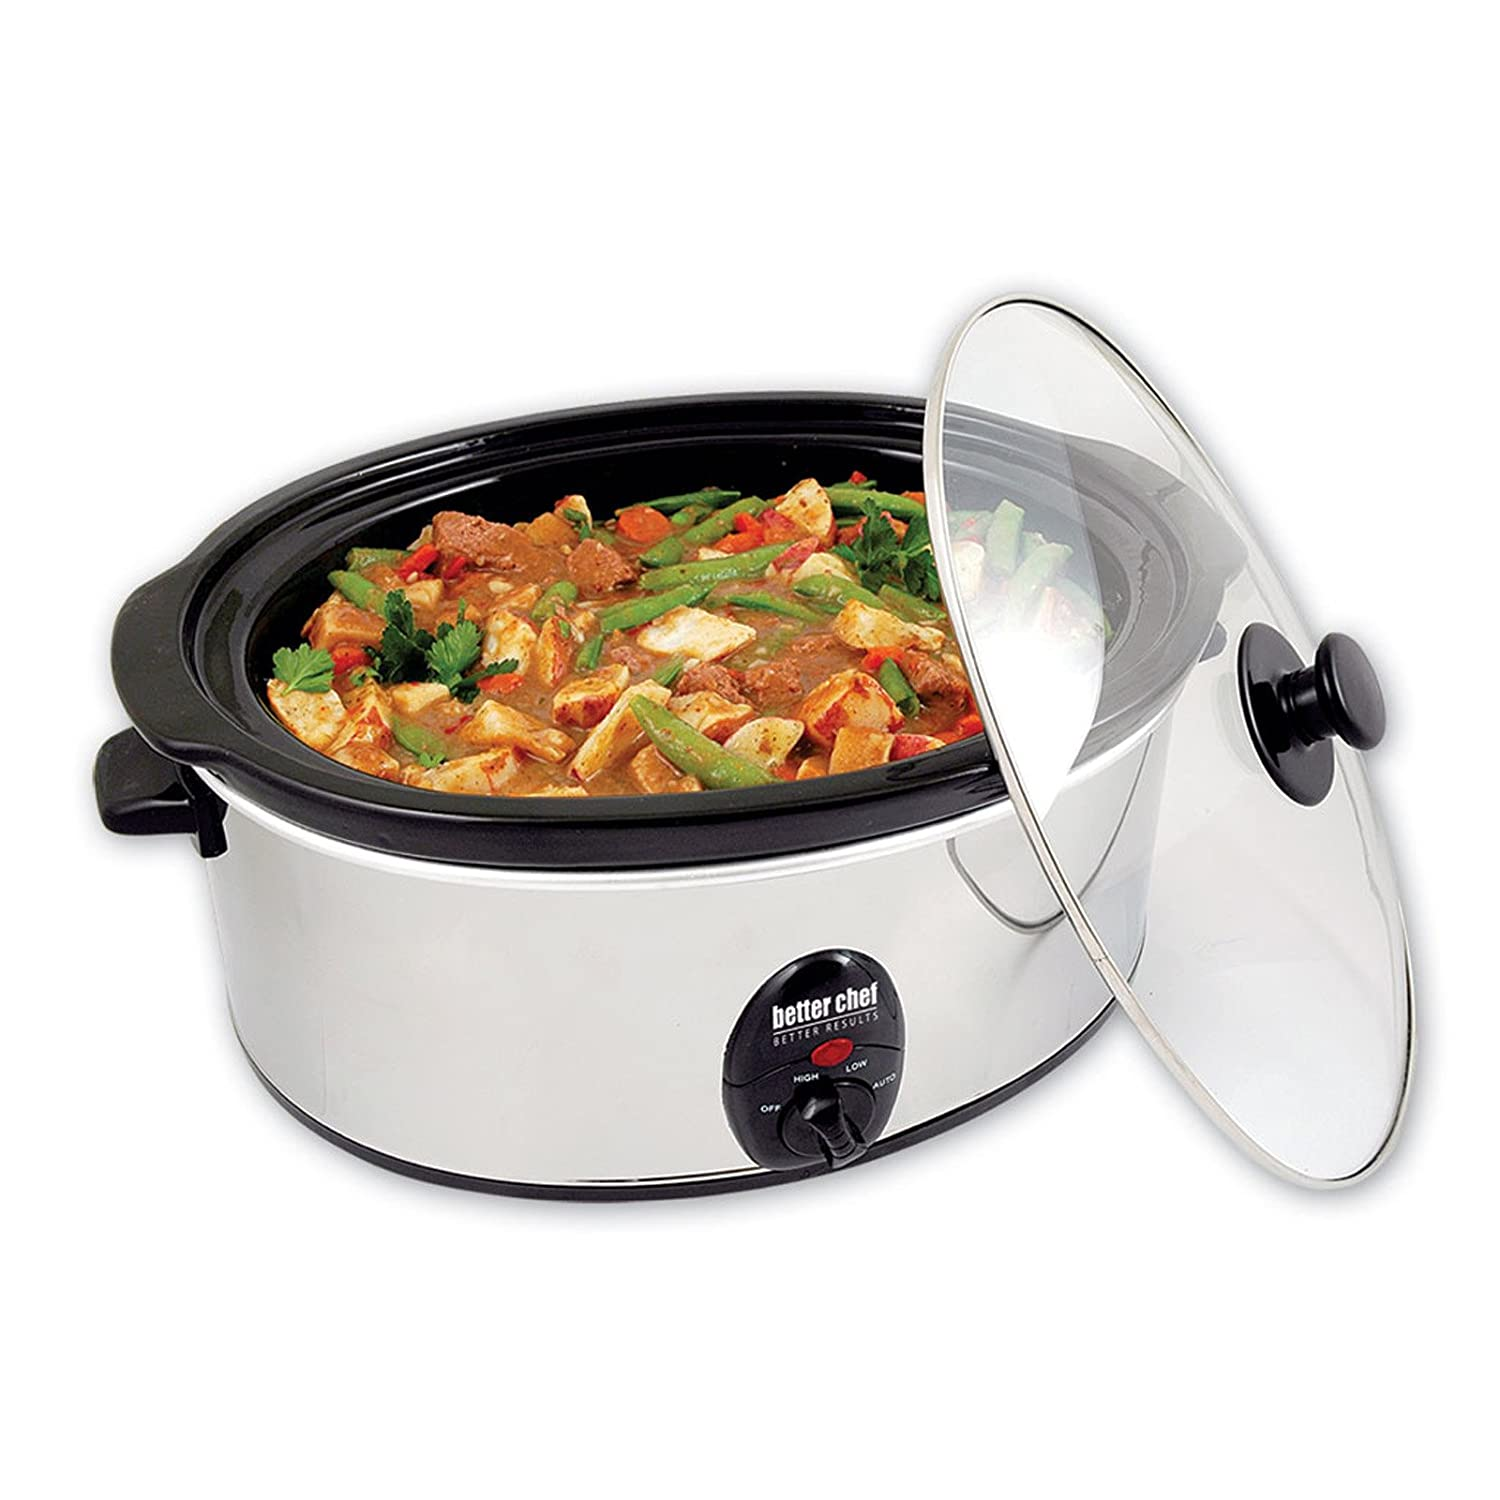 3.7-Quart Slow Cooker